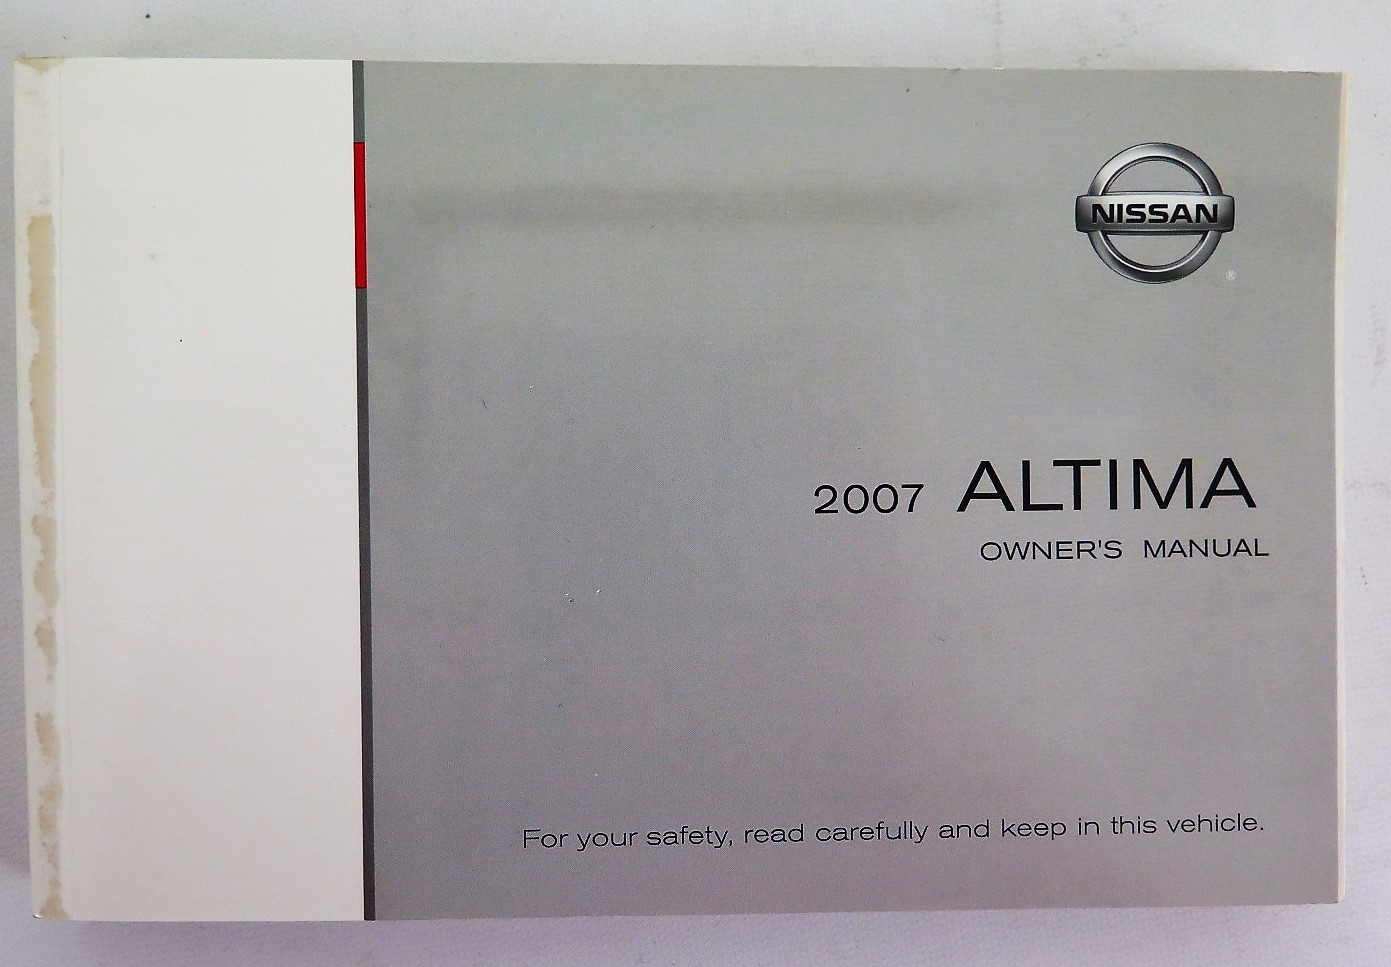 2007 nissan altima owners manual book bashful yak rh bashfulyak com 2007 nissan altima owners manual pdf 2007 nissan altima owners manual free